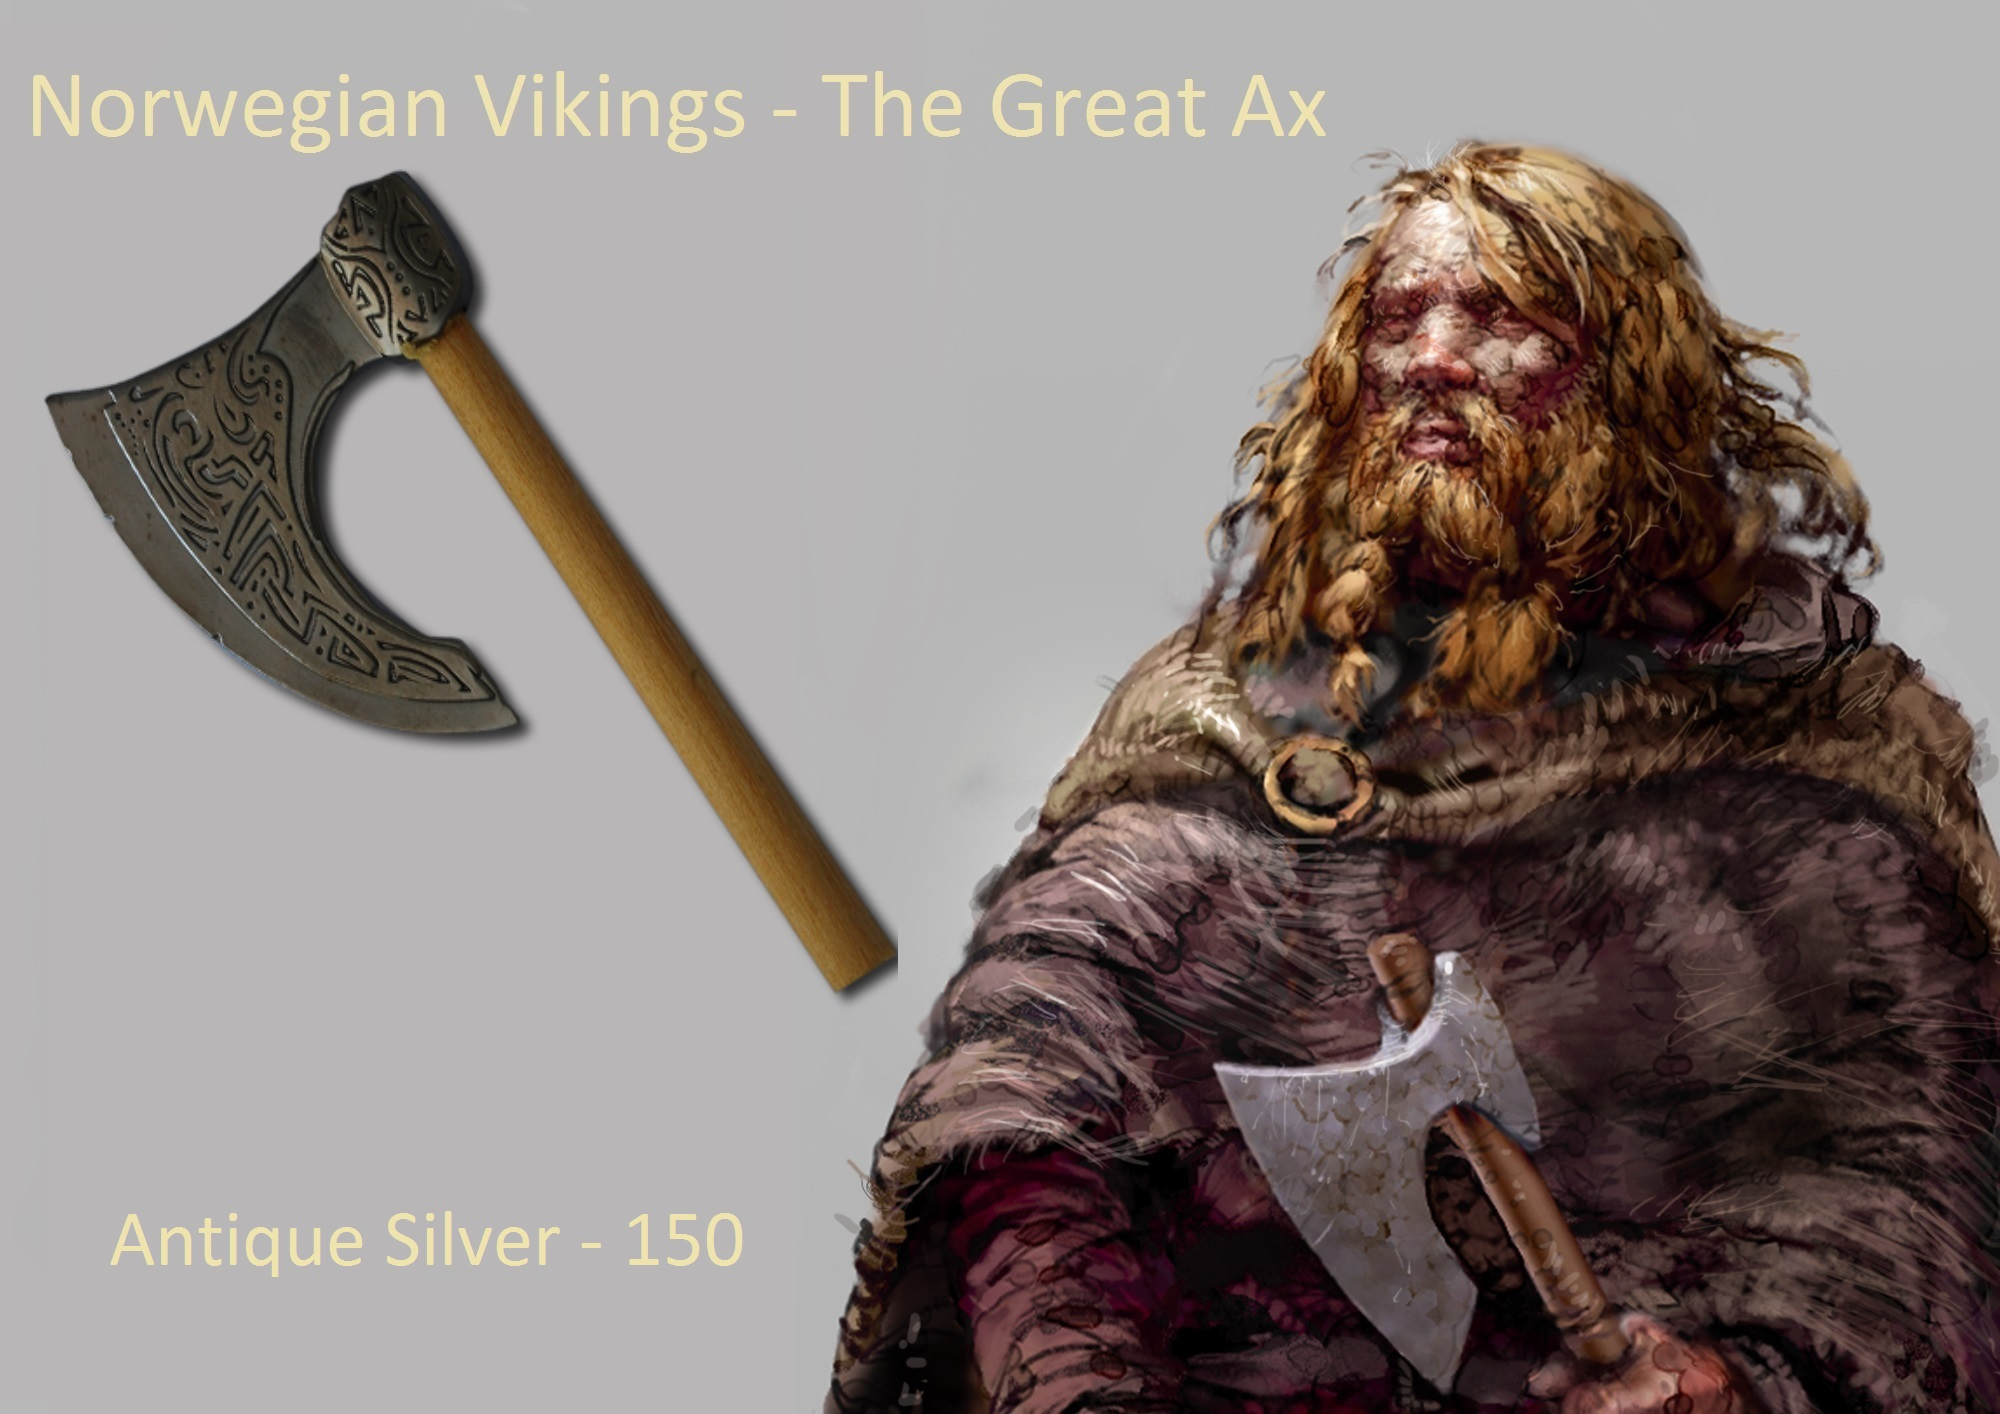 The Great Ax - Antique Silver.jpg